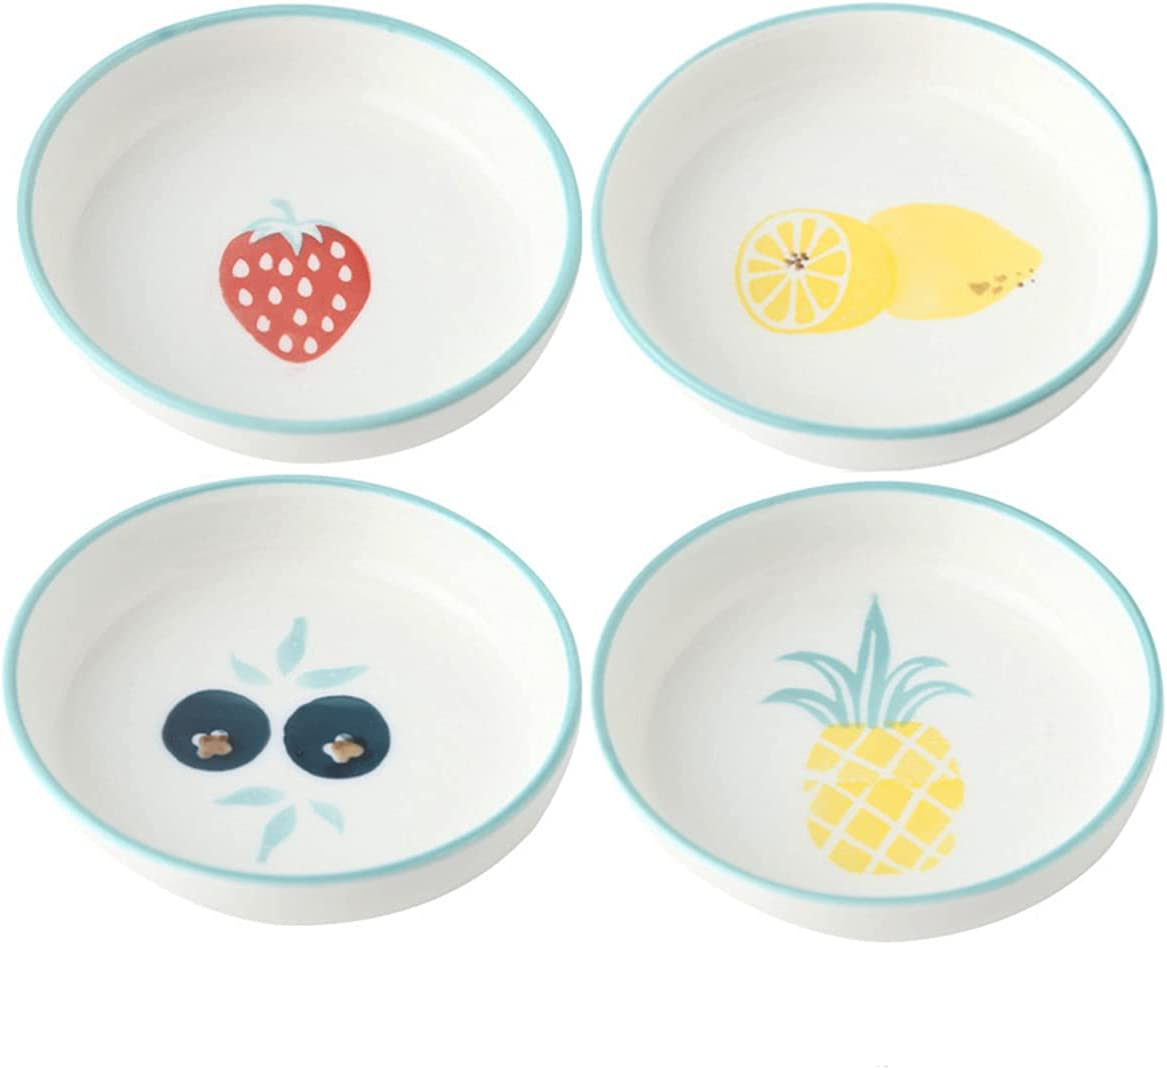 Fort Worth Mall Sizikato 4pcs Porcelain Appetizer F 3.4-Inch Snack Plate Rapid rise